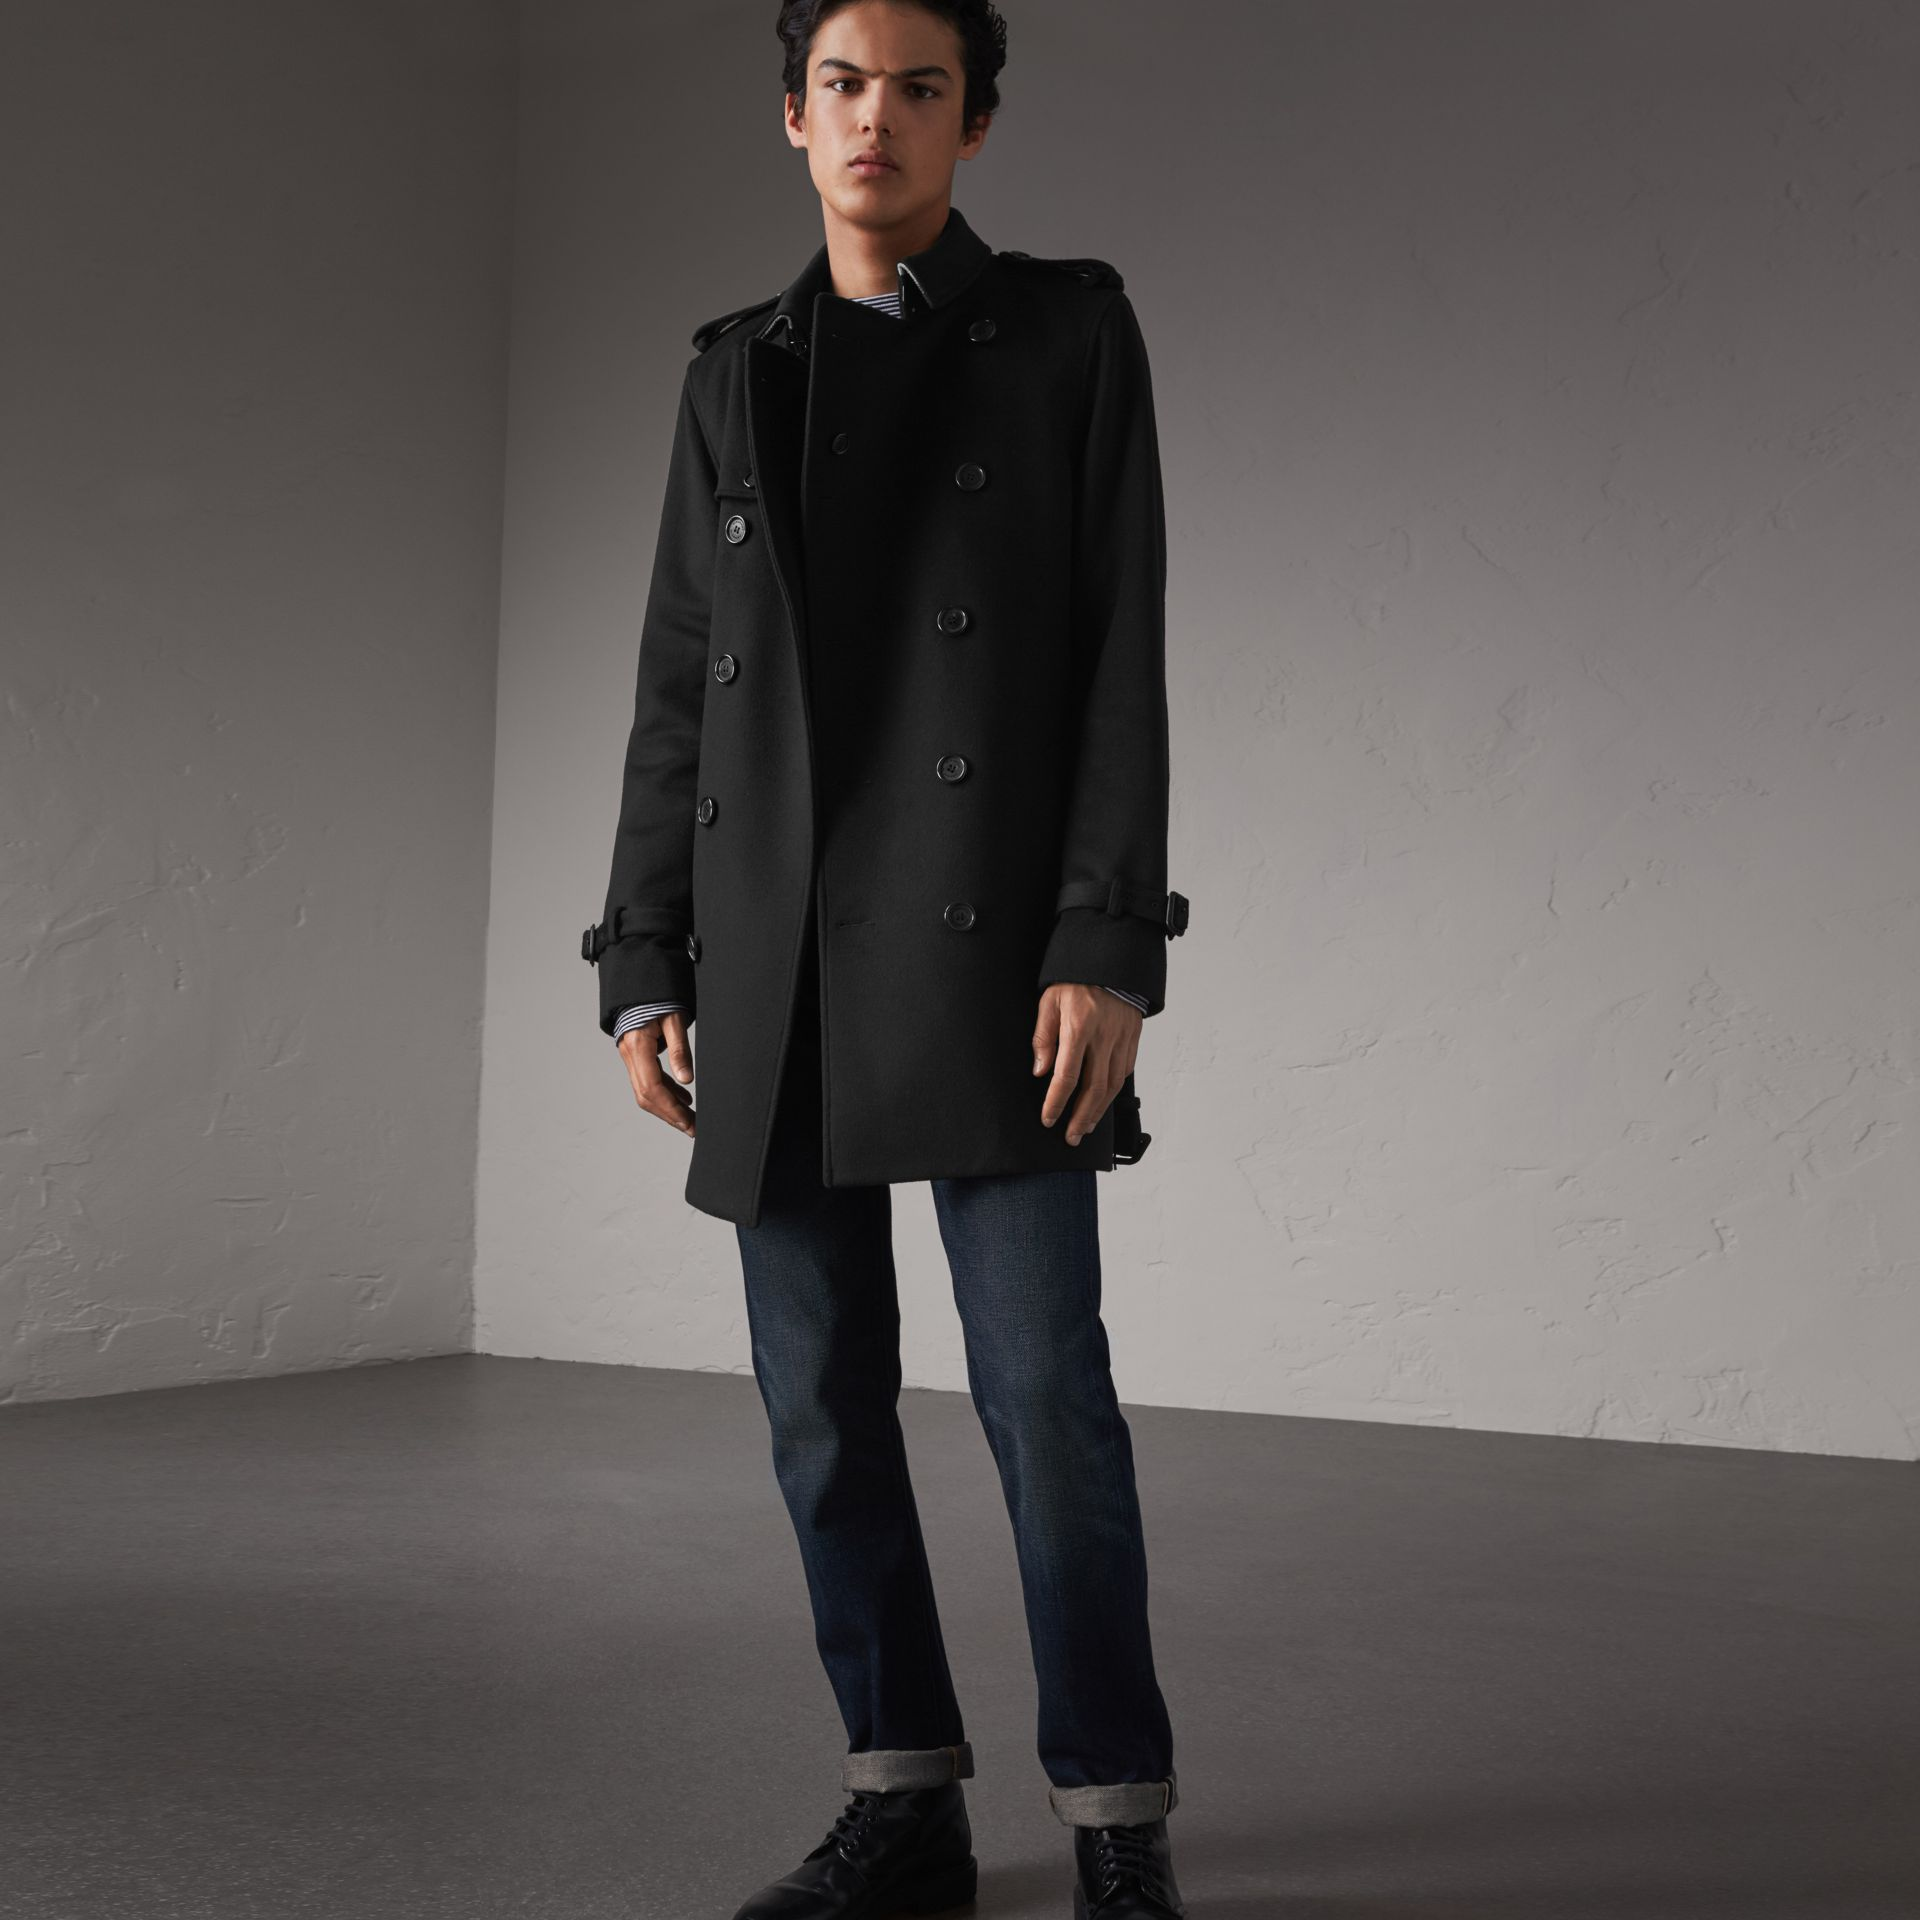 Wool Cashmere Trench Coat in Black - Men | Burberry Australia - gallery image 0